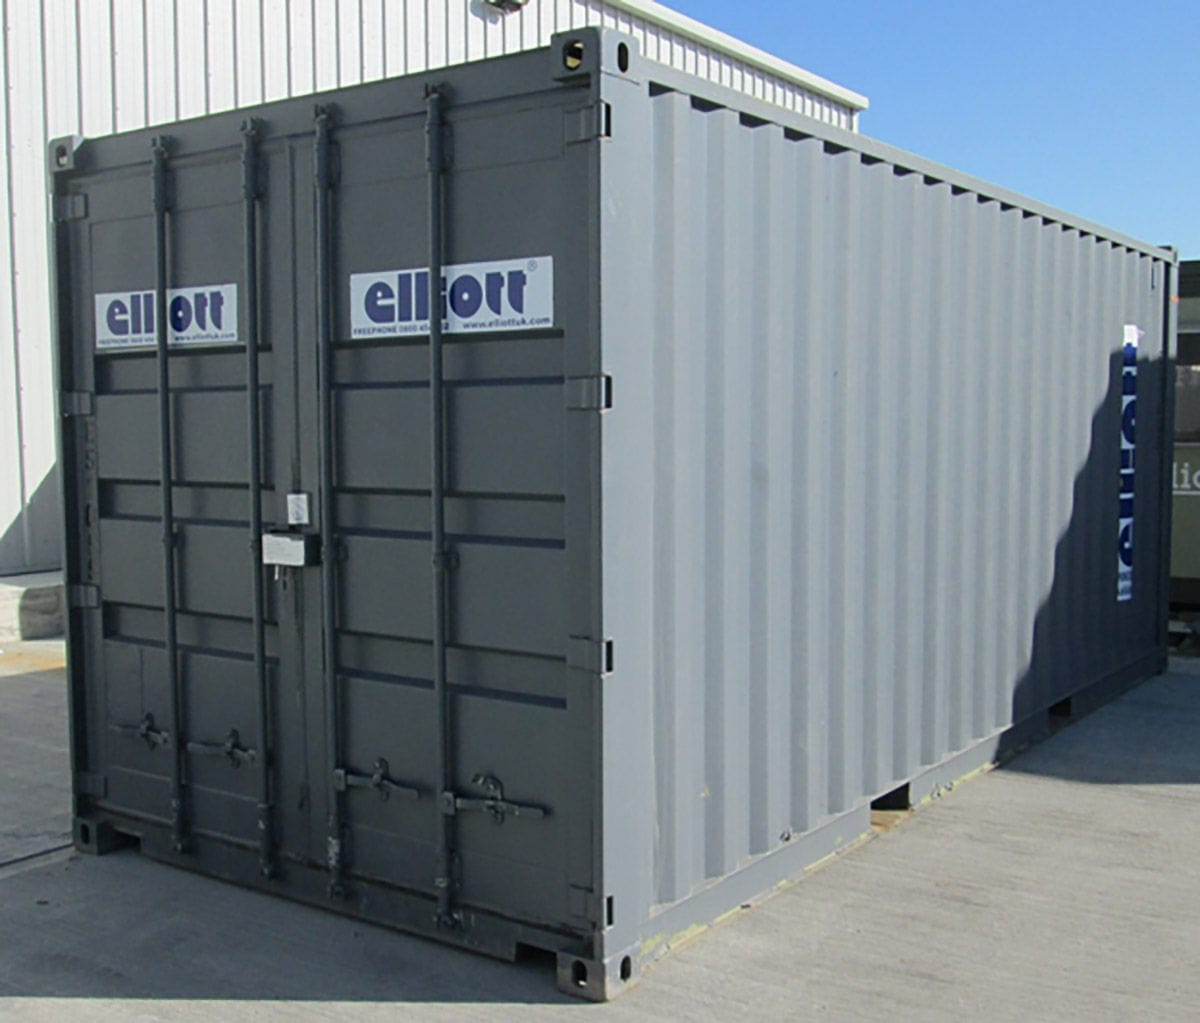 Commercial container construction storage ANTI VANDAL SECURE